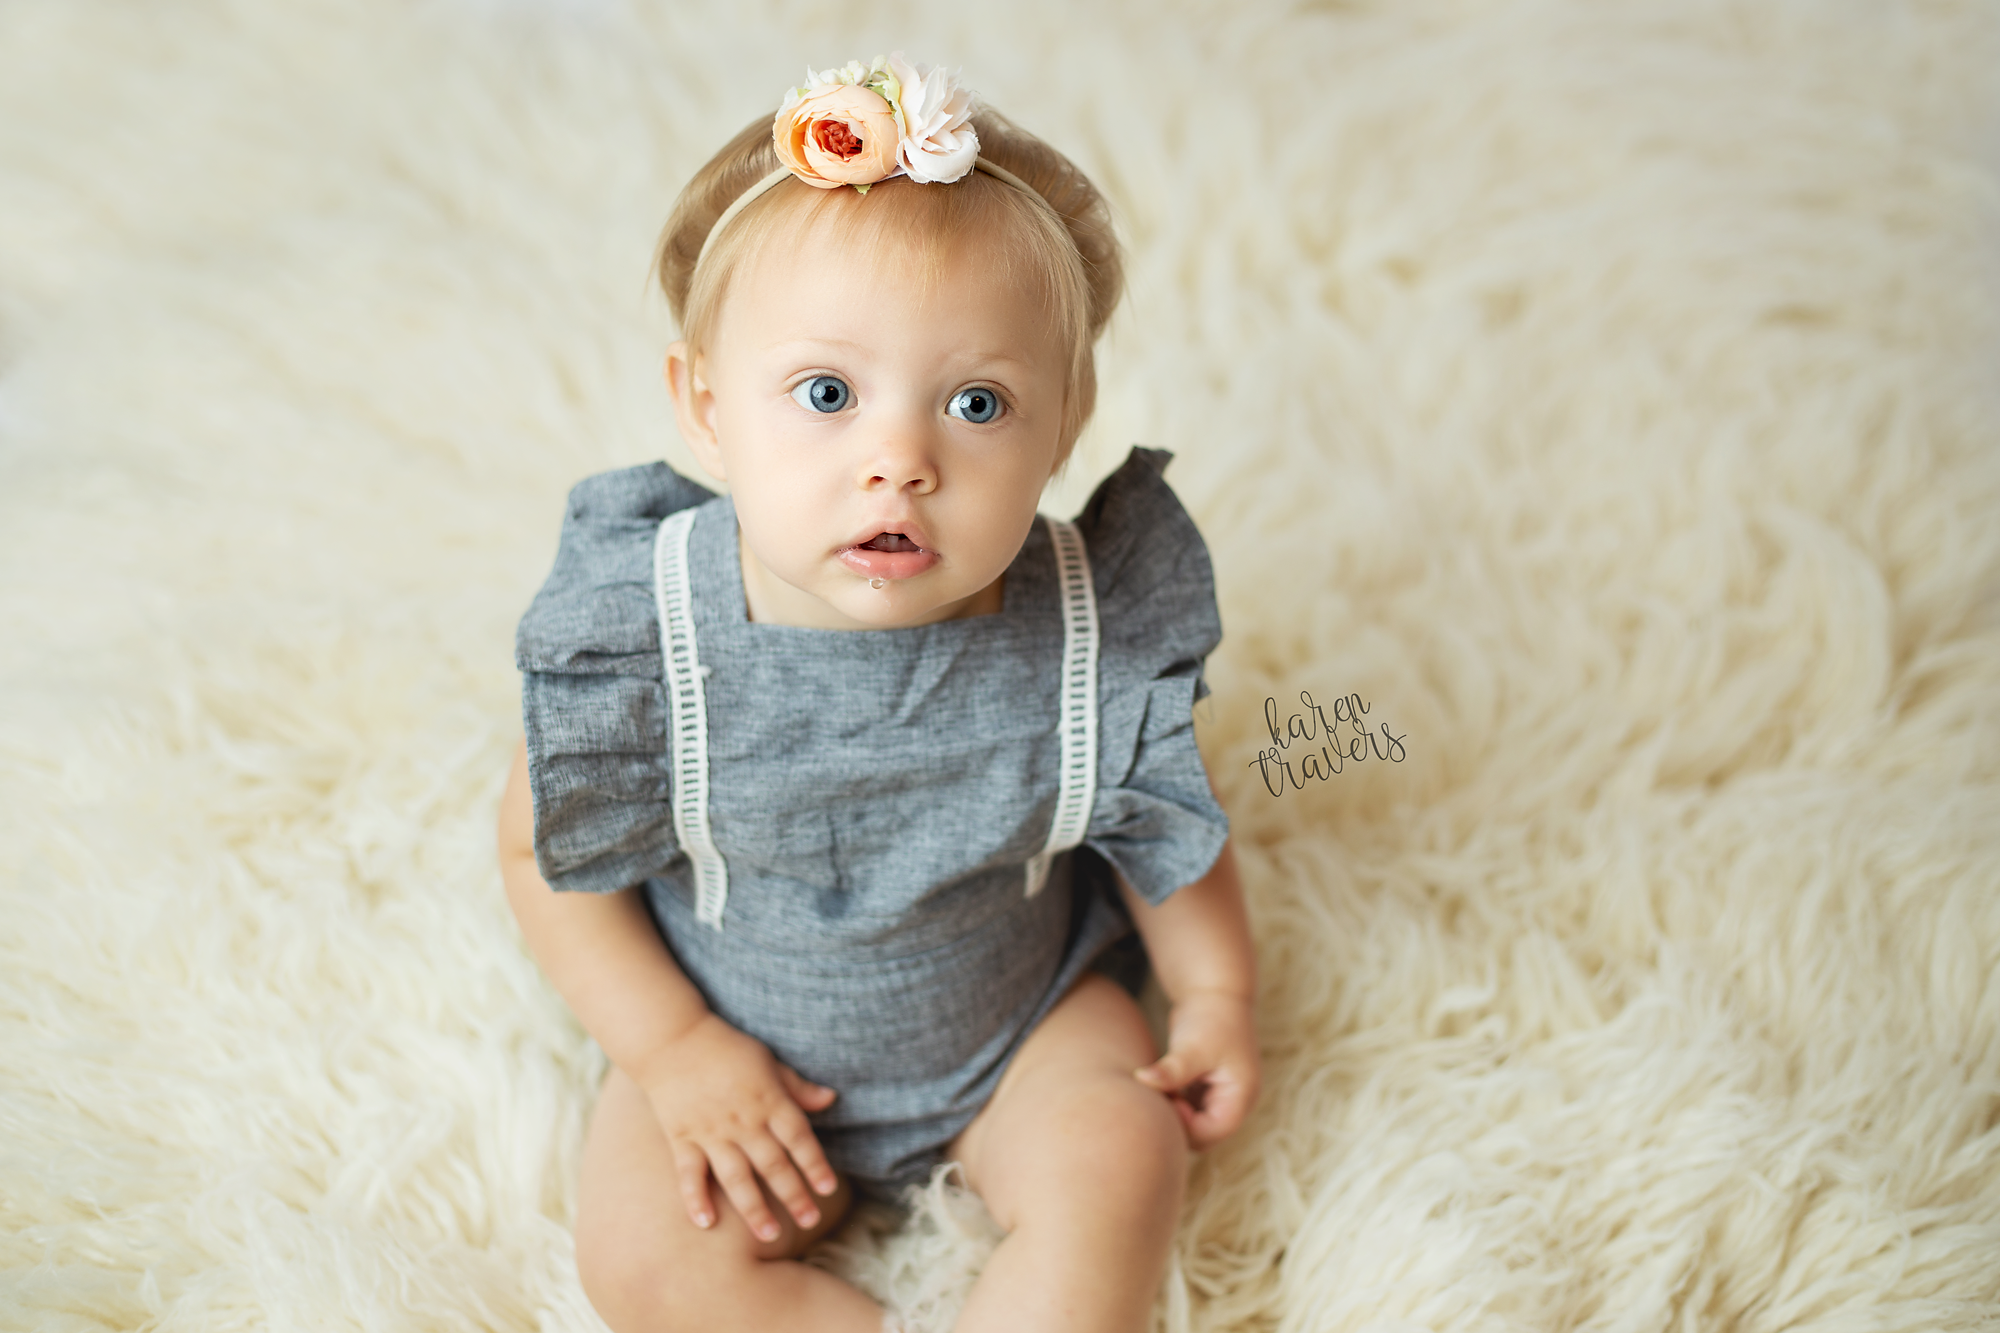 anchorage-newborn-photographer-5.png